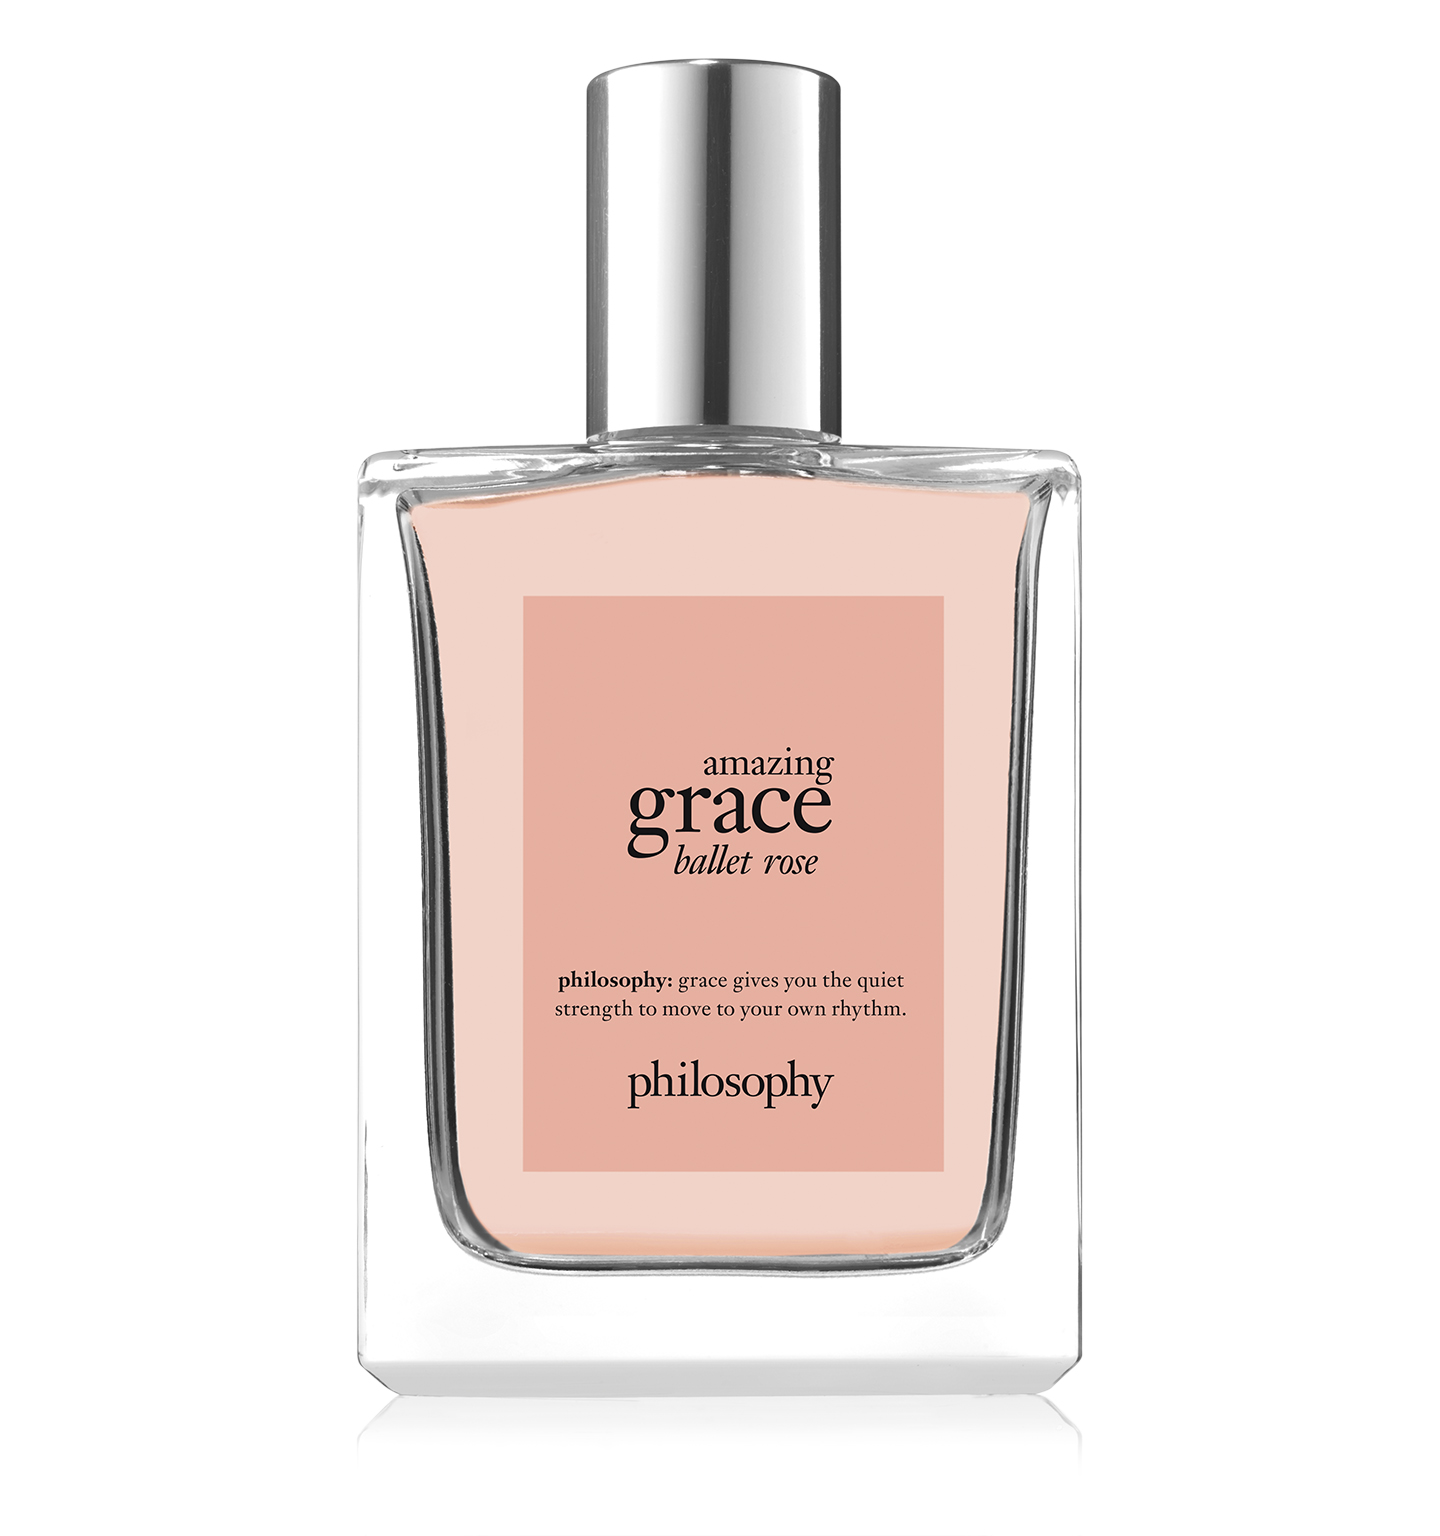 philosophy, amazing grace ballet rose spray fragrance